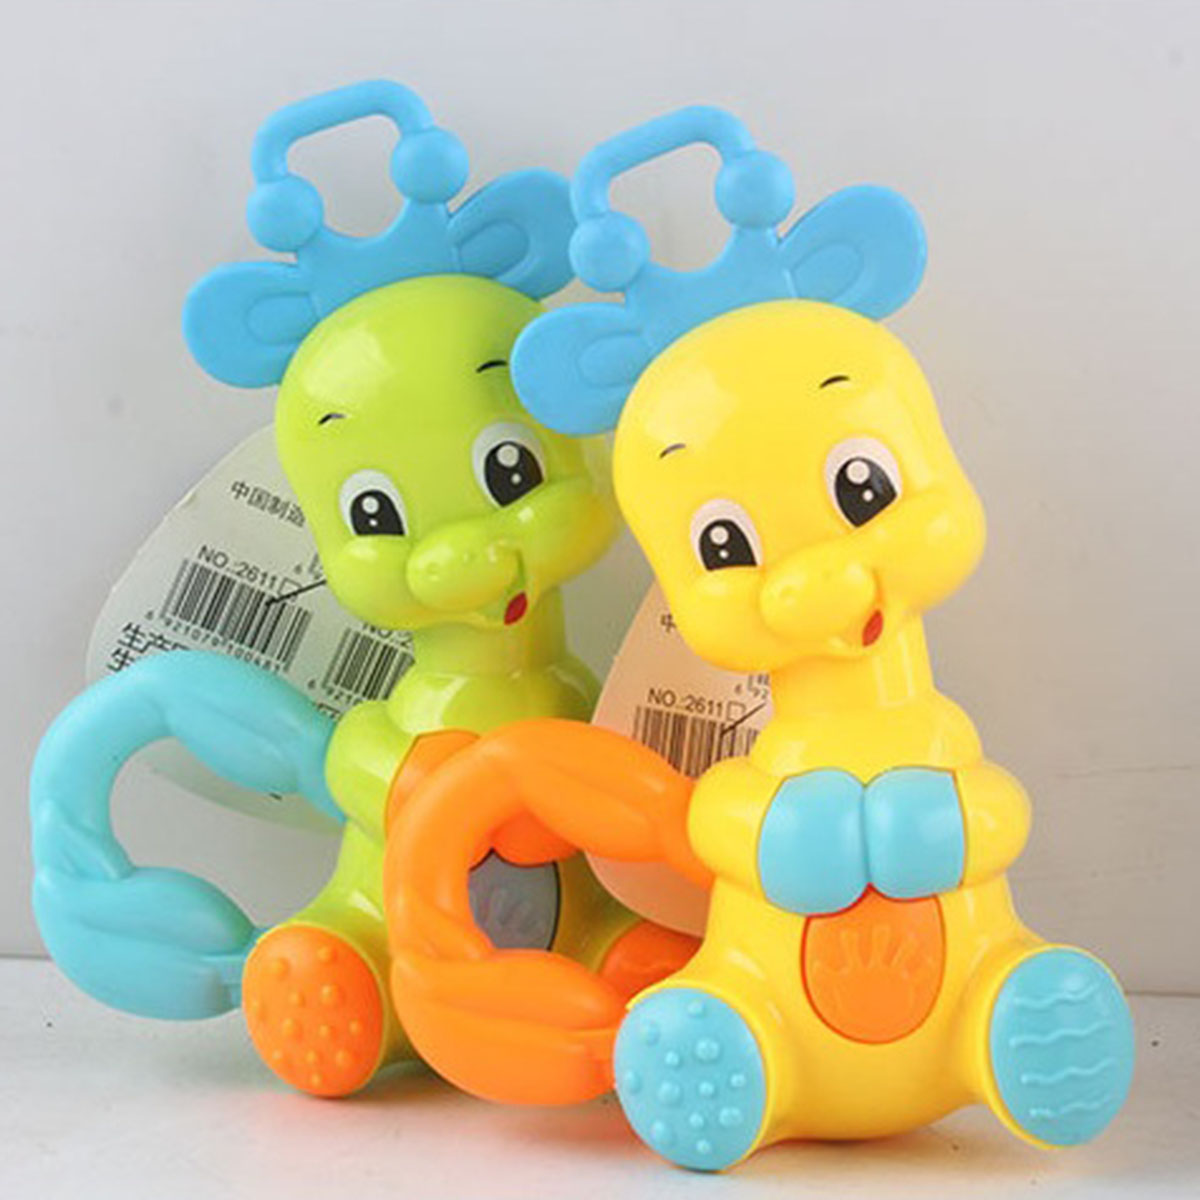 Baby Rattles Mobiles Funny Educational Toys Infant Baby Rattles Grasping Soft Plastic Handing Crib Bell Rattle Birthday Gifts